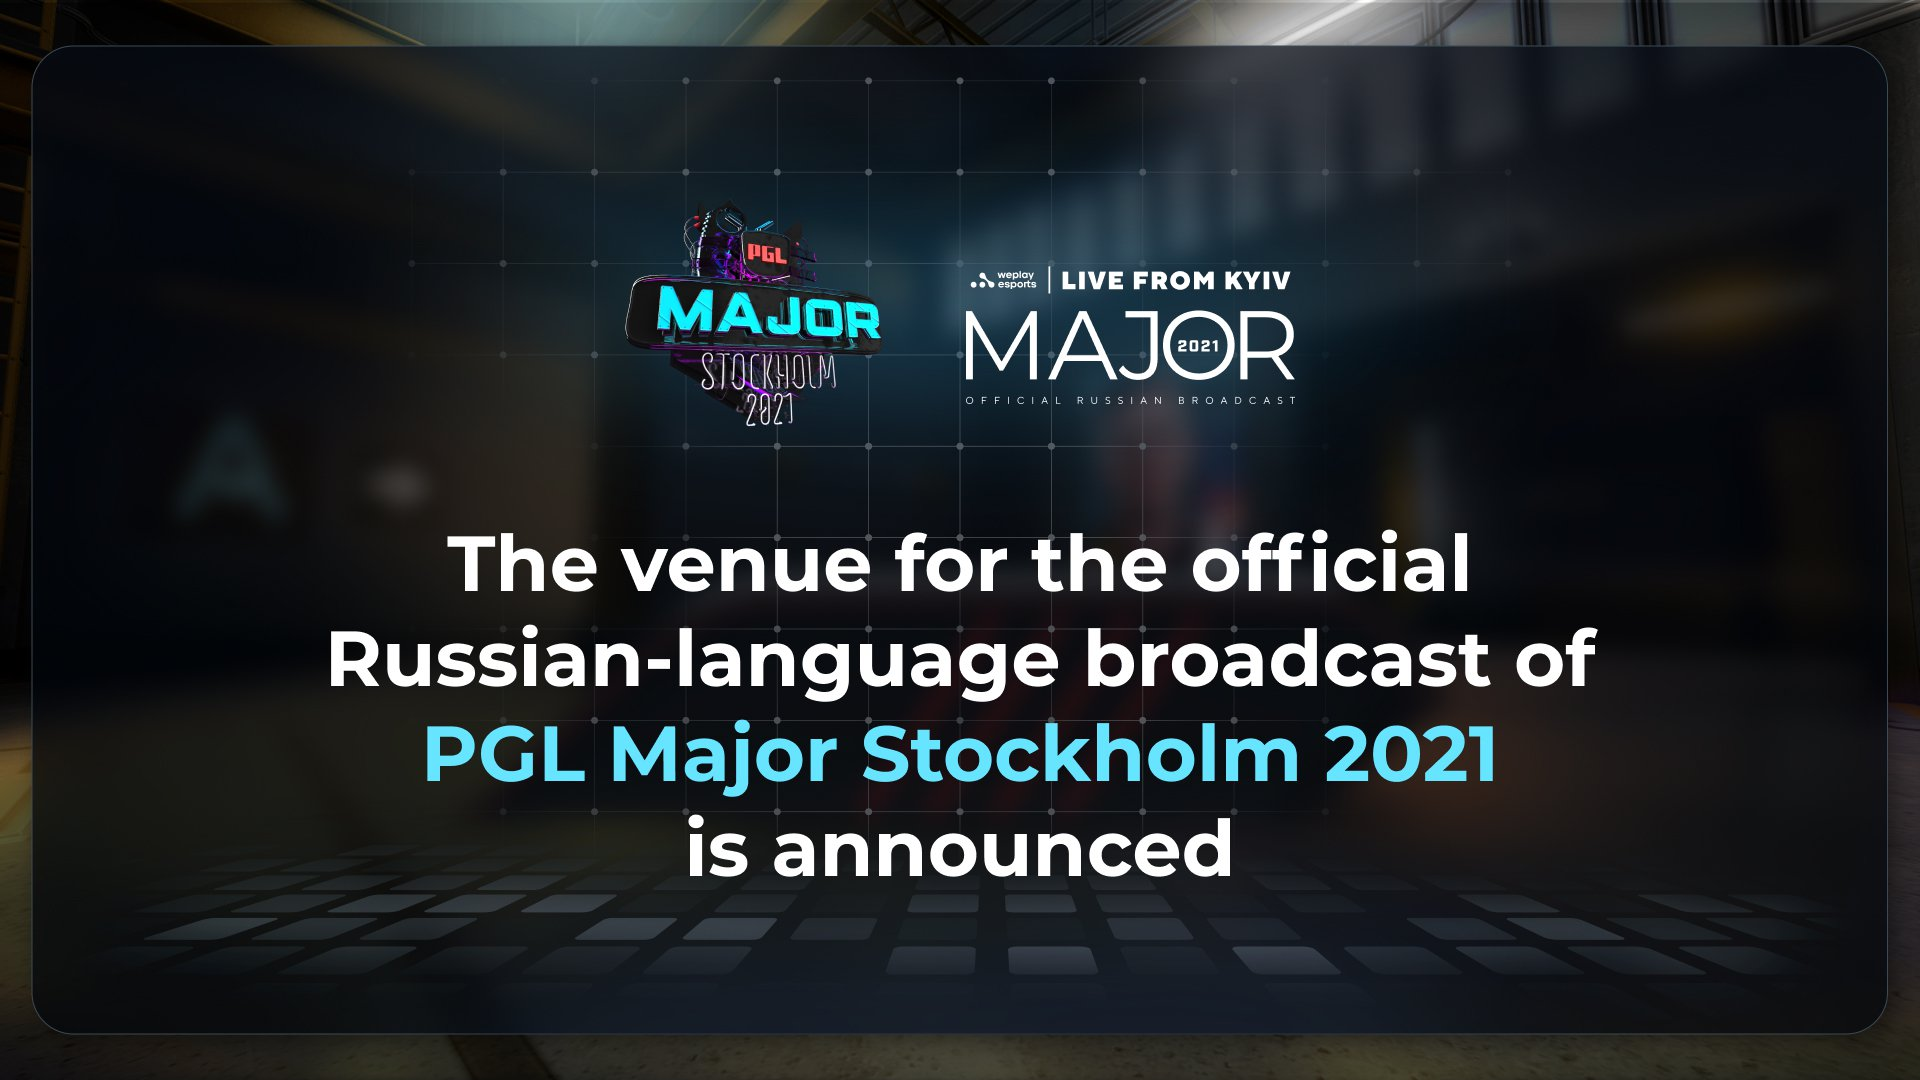 The venue for the official Russian-language broadcast of the PGL Major Stockholm 2021 is announced. Image: WePlay Holding